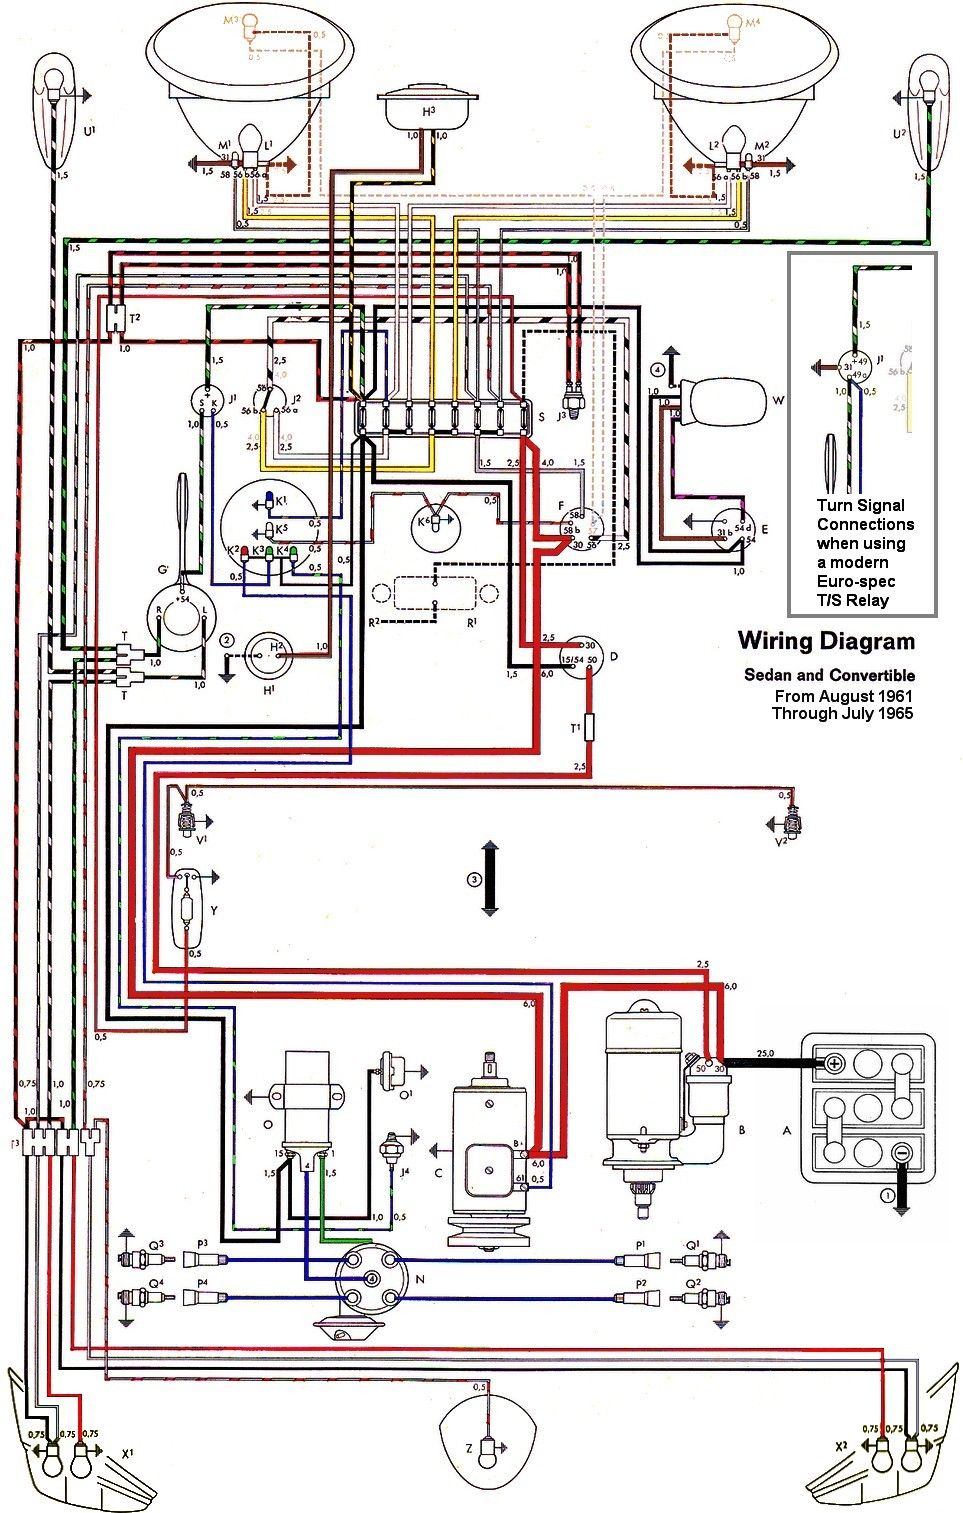 Vw Super Beetle Wiring 1972 Bus Ignintion Switch 1971 Fuse Diagram Rh Signaturepedagogies Org Uk Harness